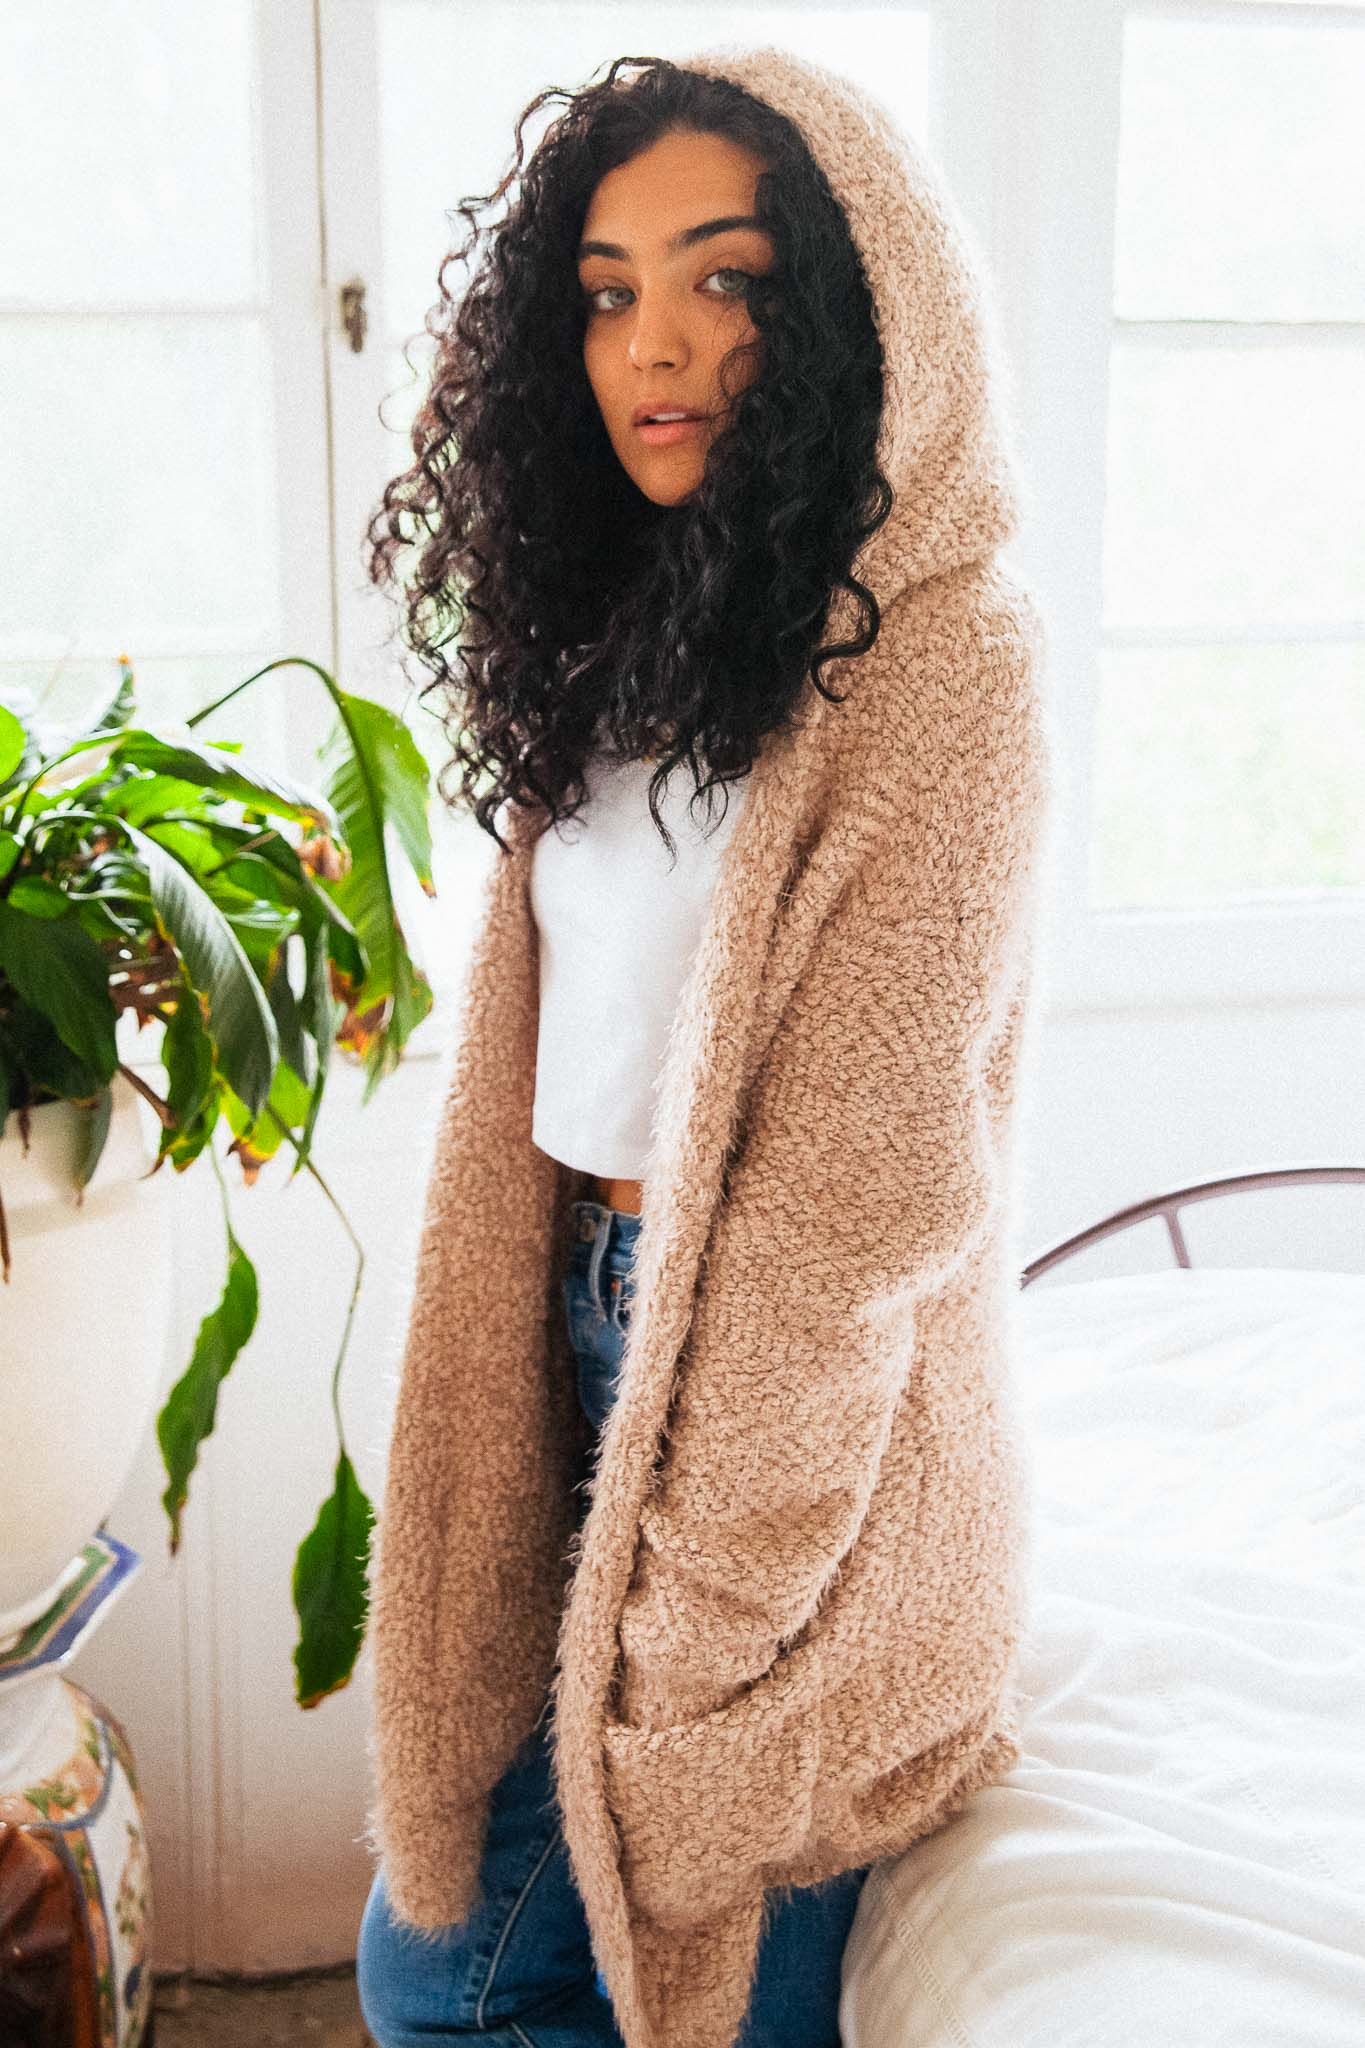 Snuggle Up Cardi - The Canyon